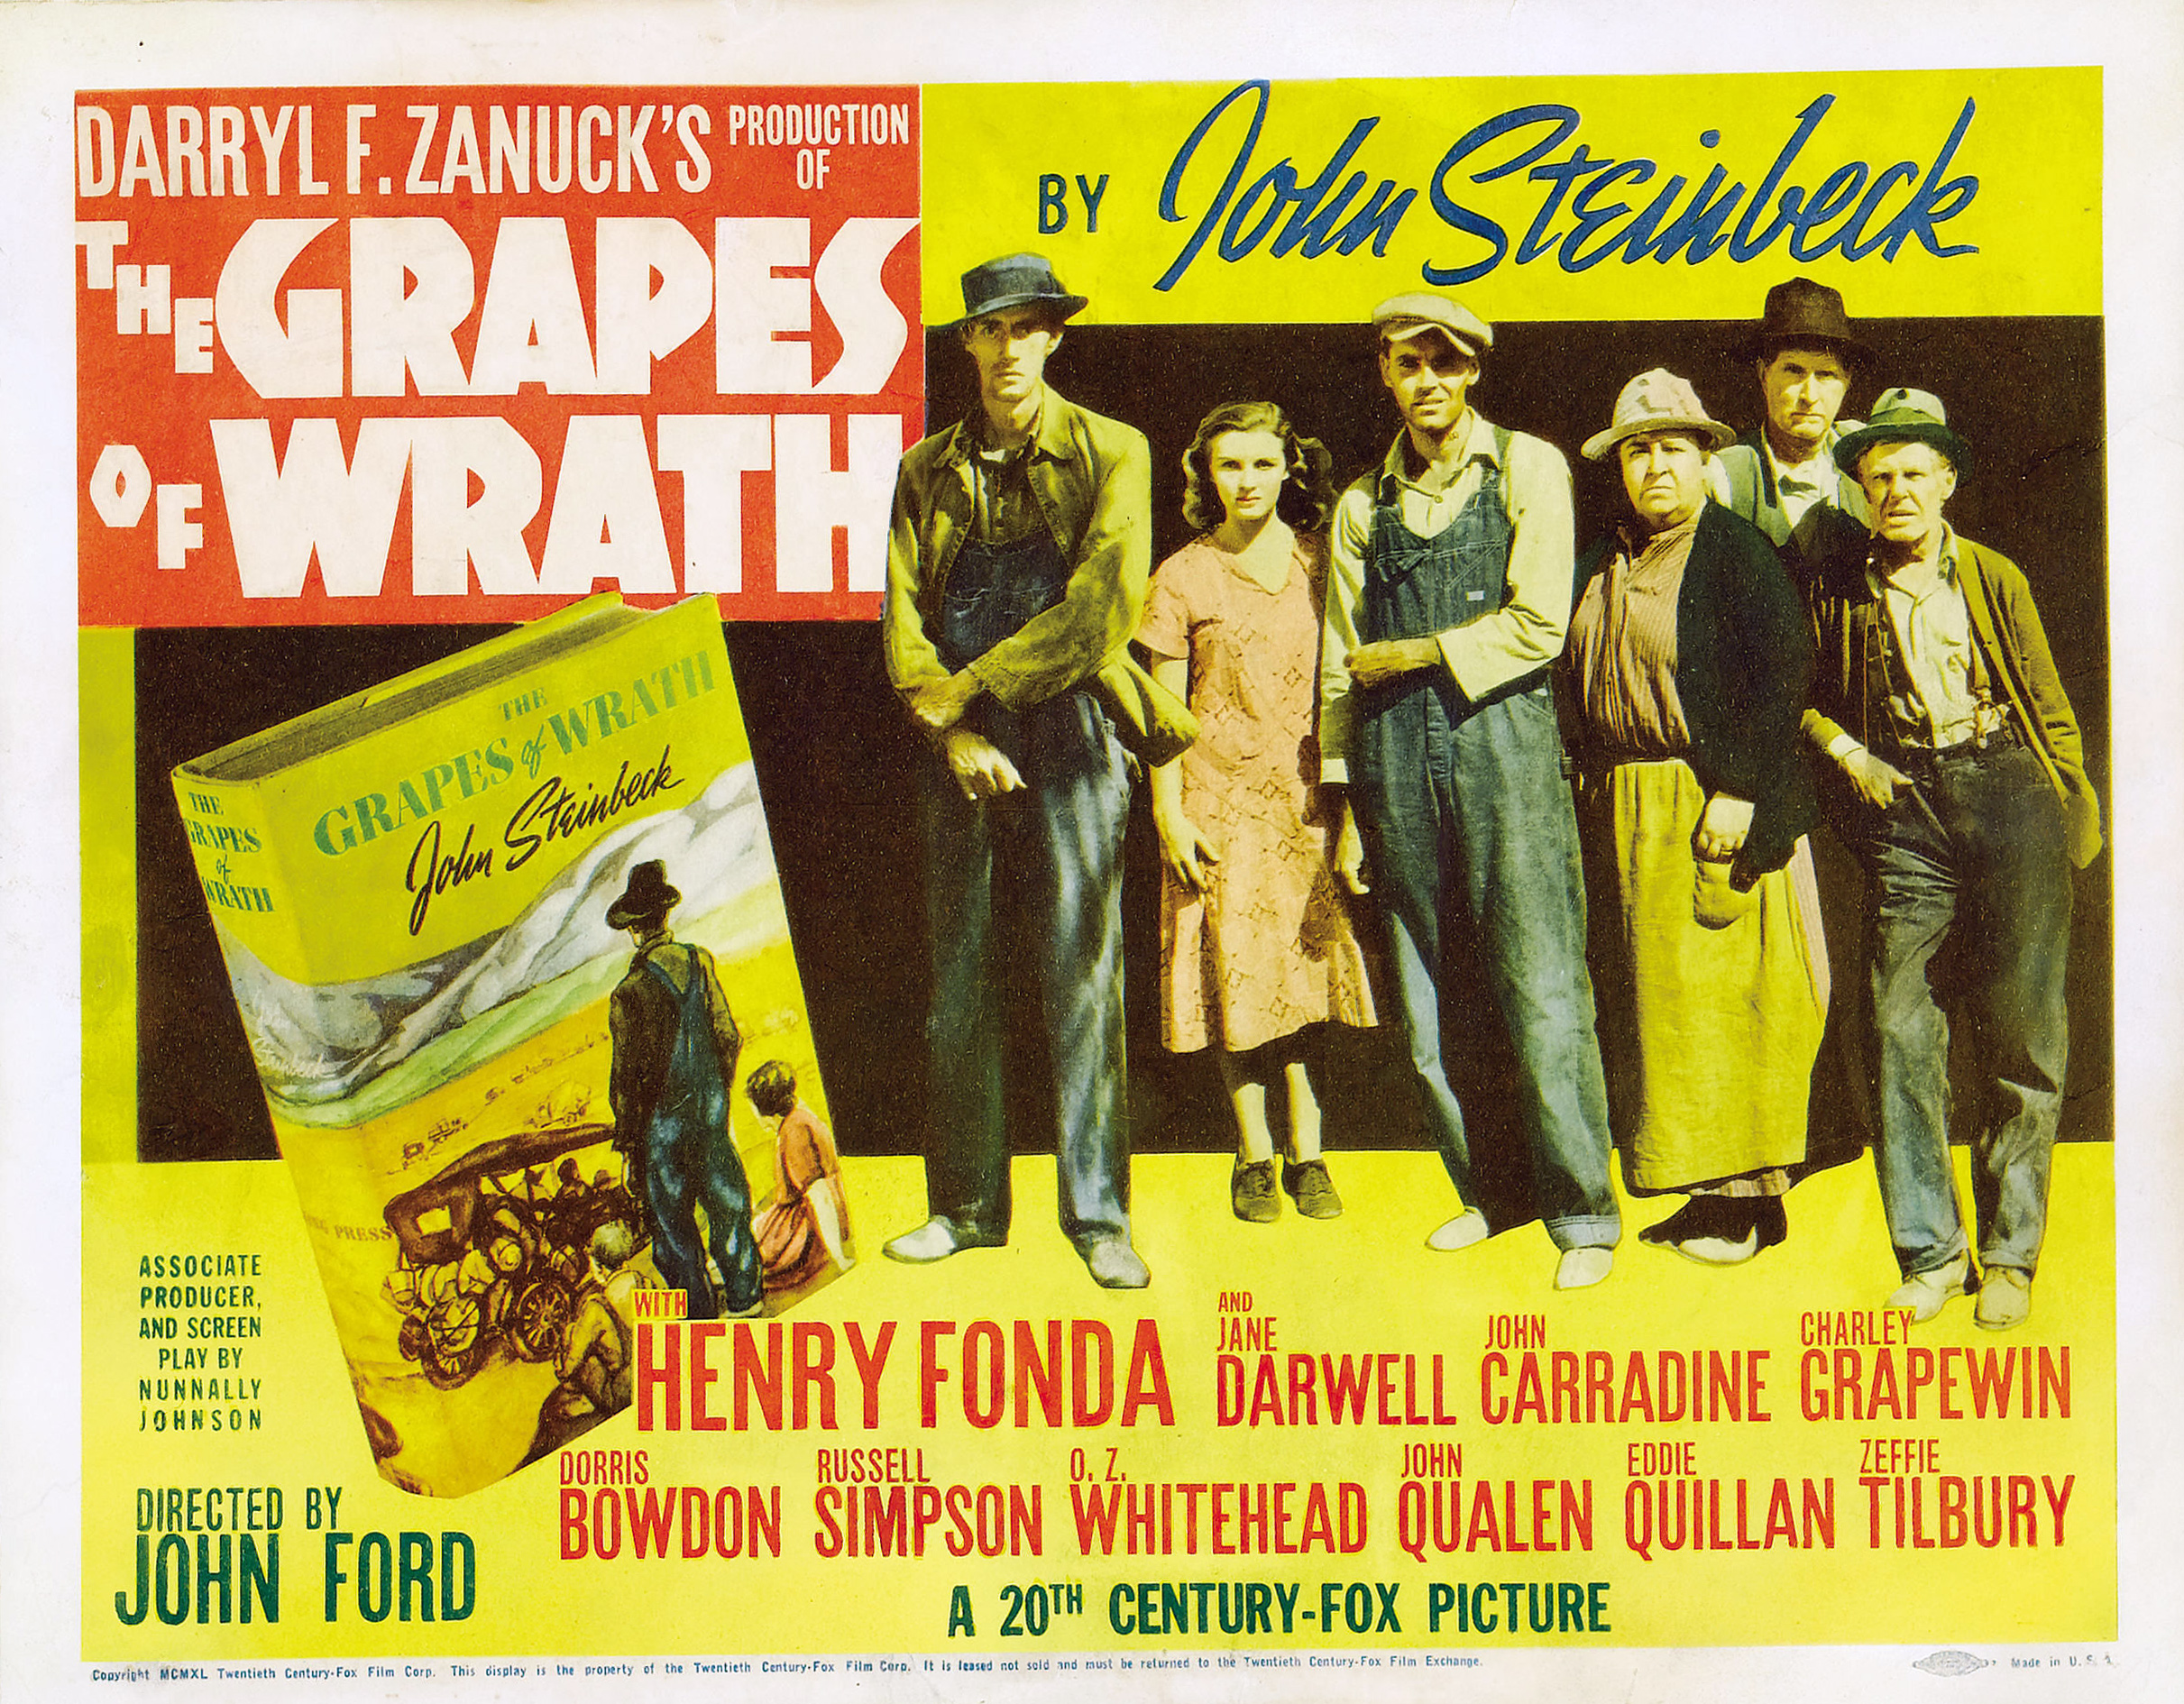 the grapes of wrath movie review The grapes of wrath is a visual masterpiece ford alternates wide open on-the-road scenes that convey the exhaustion of bouncing down dusty highways with intense.